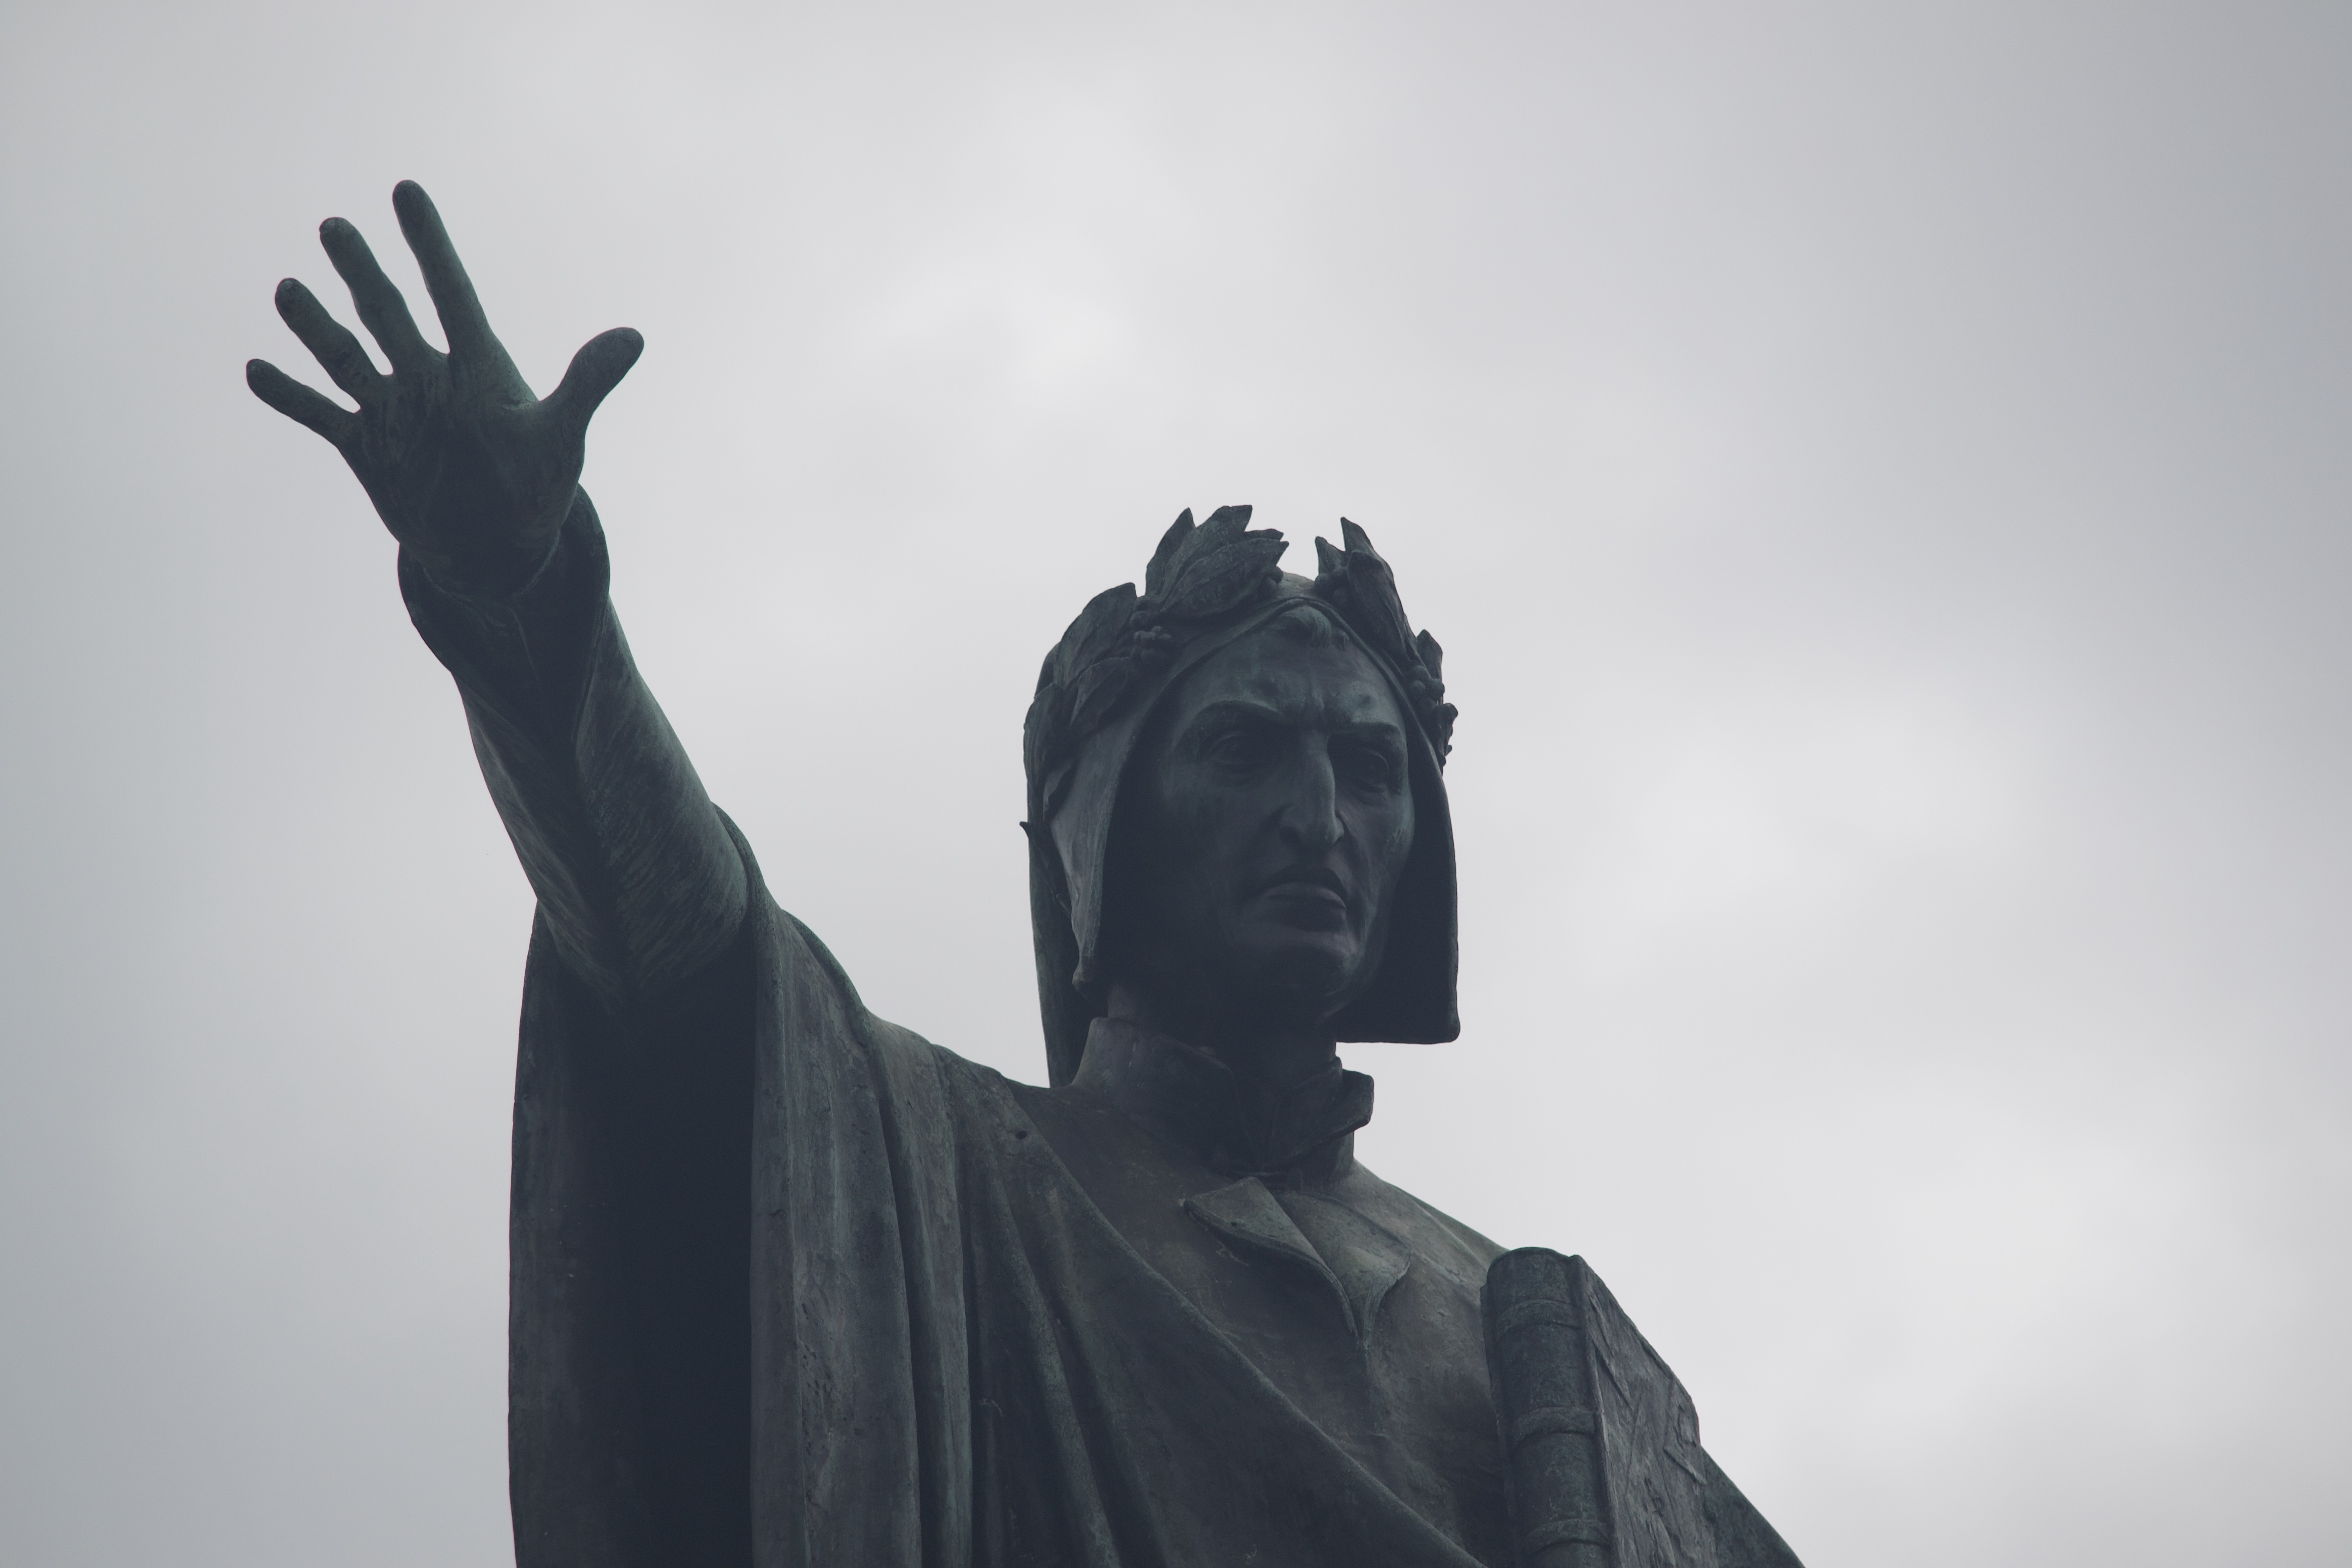 A statue of a serious man with a laurel crown extending his right hand, fingers spread.